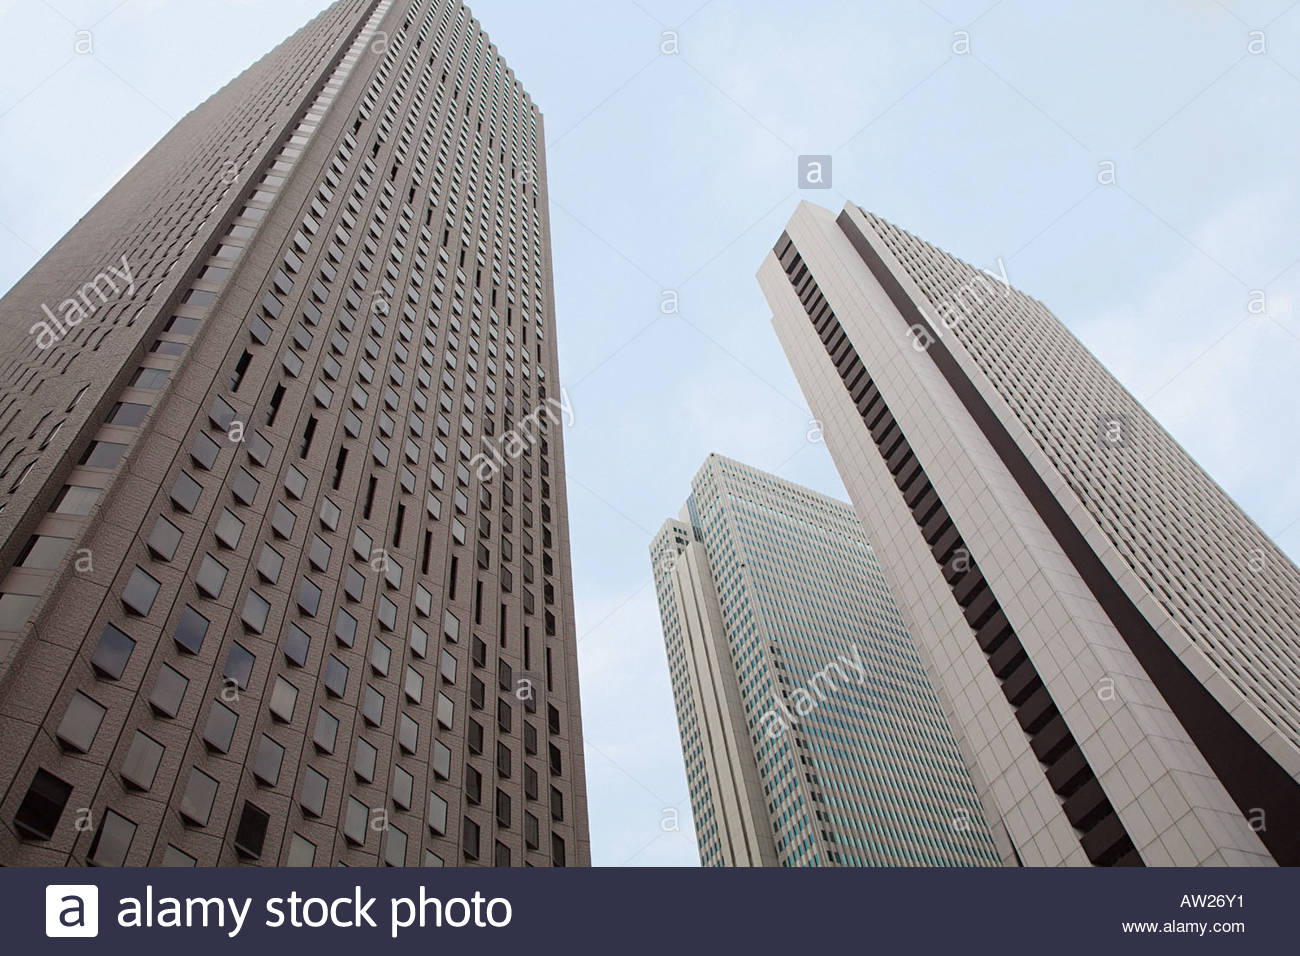 Shinjuku skyscrapers - Stock Image